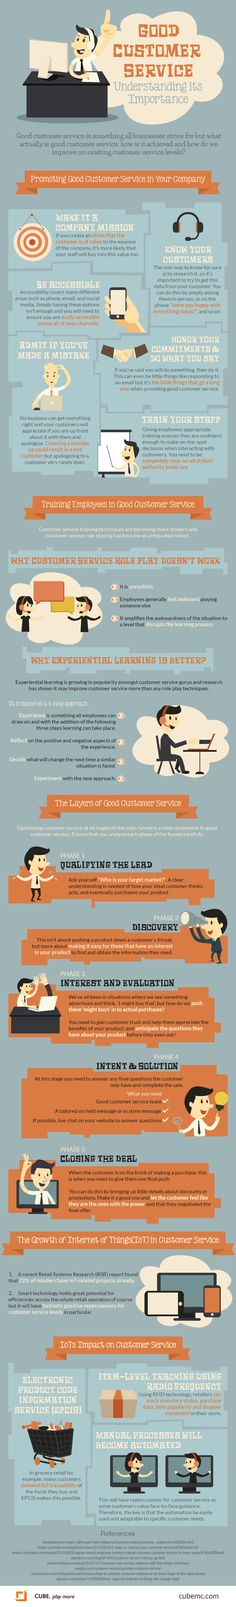 A Customer Service Infographic